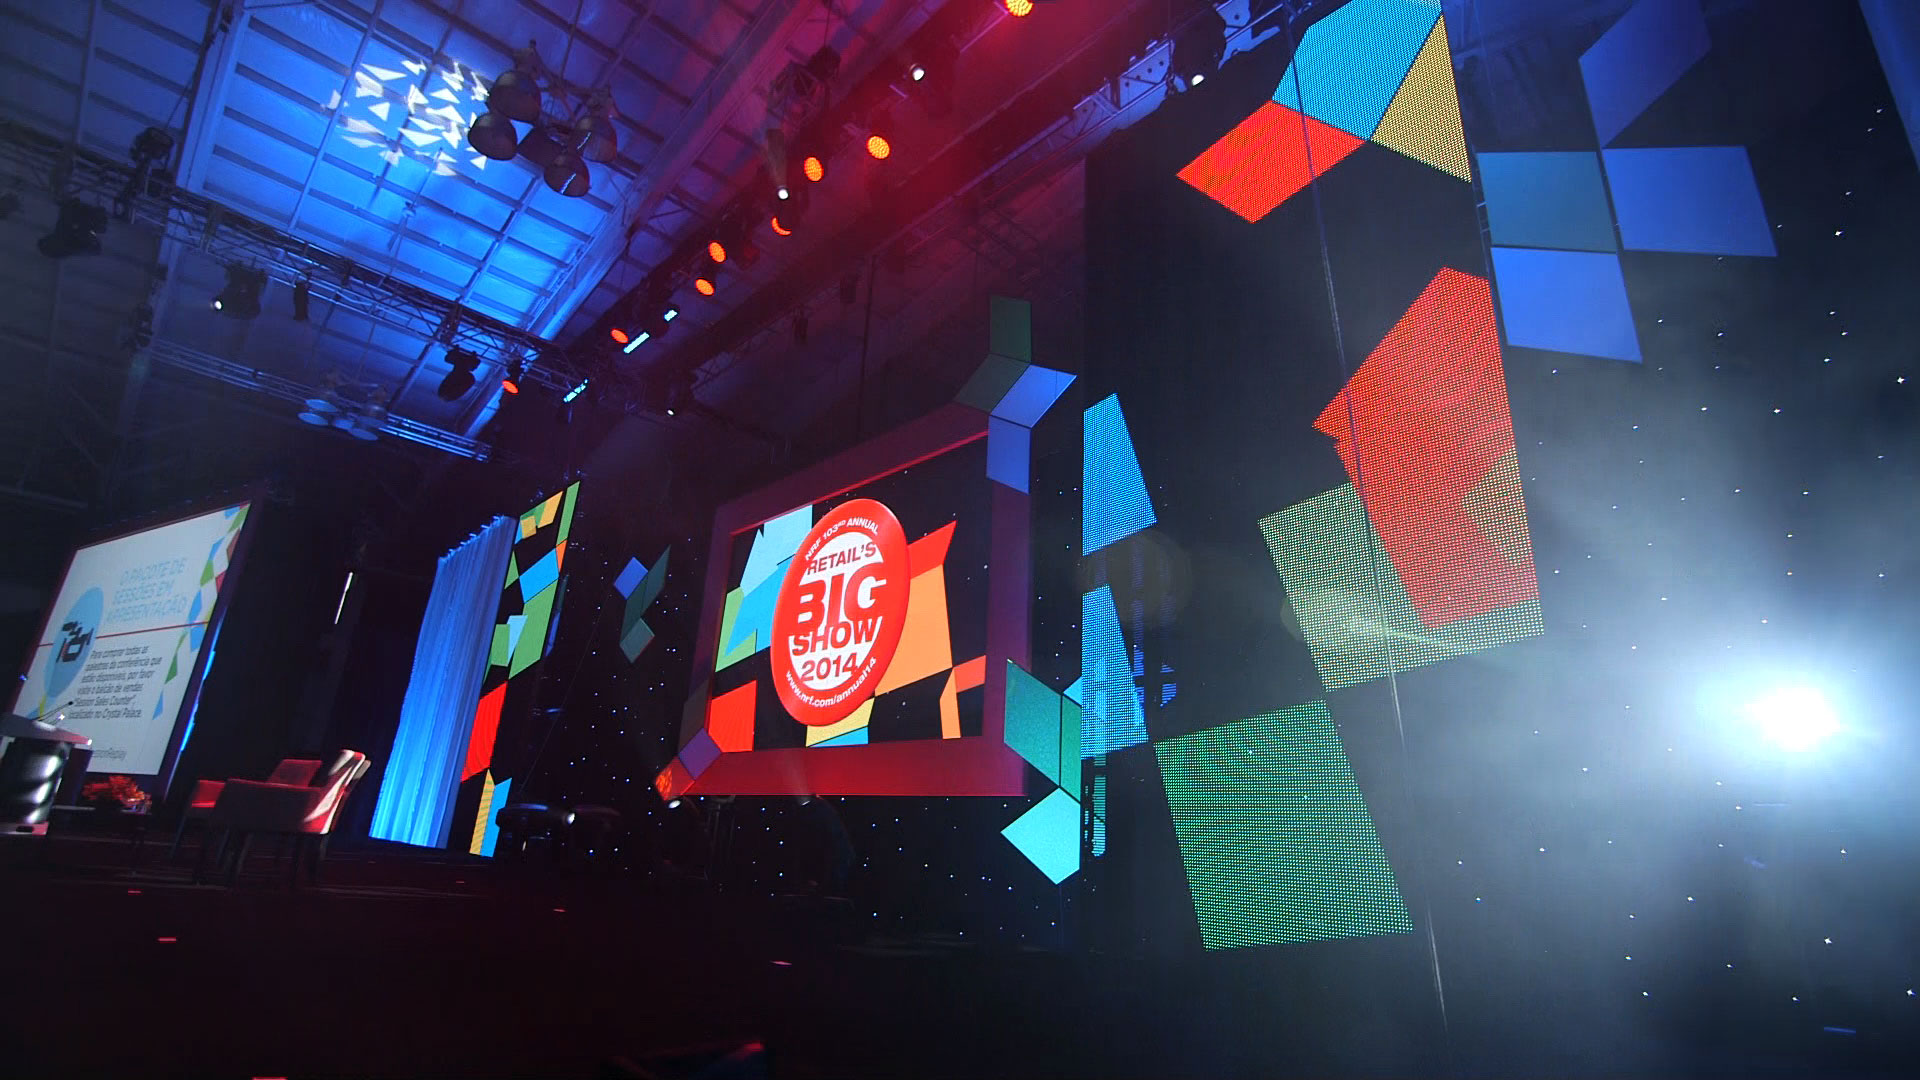 LAI-Video-NRF-2014-BIG-Show-Stage-LED